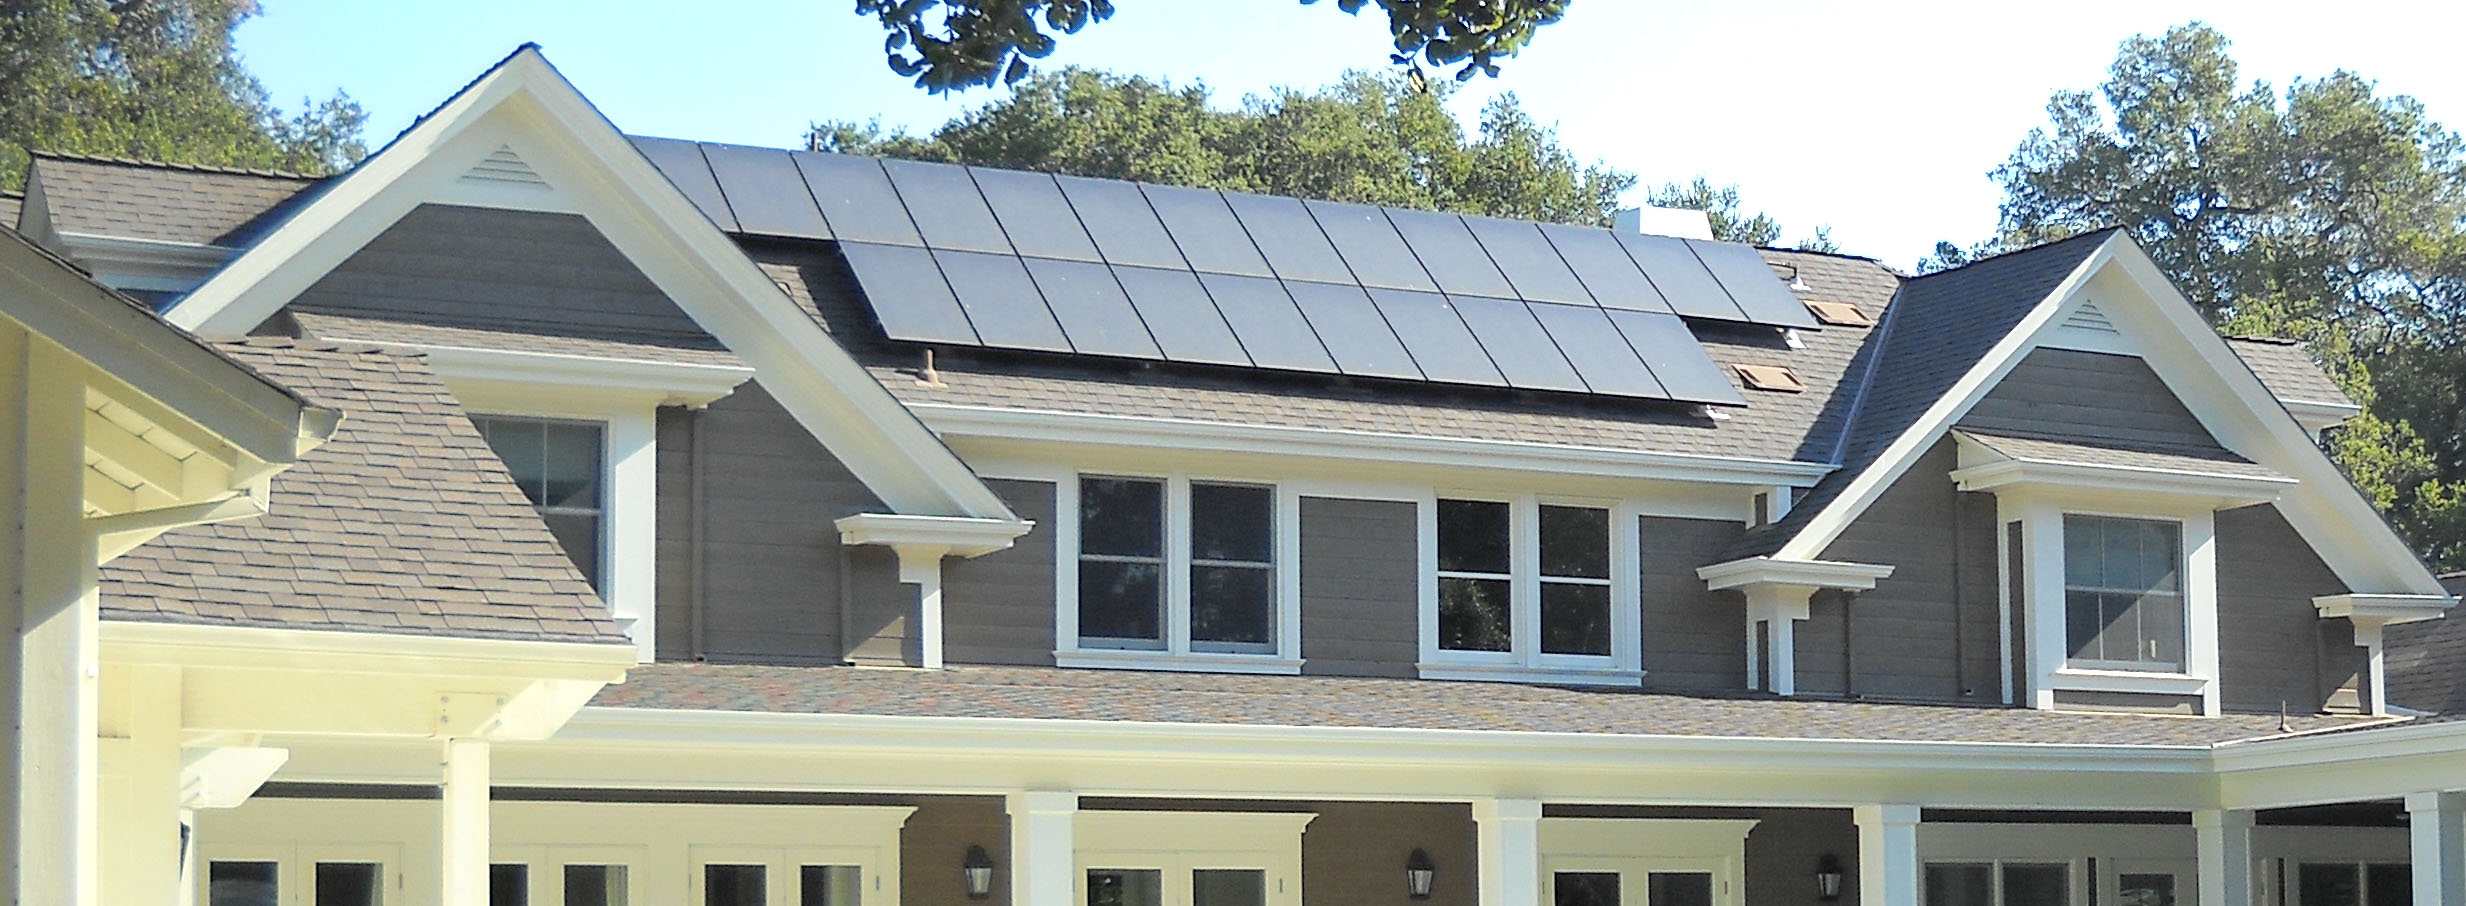 Solar panels on this   modern farm house   help to heat water throughout the home and pool.